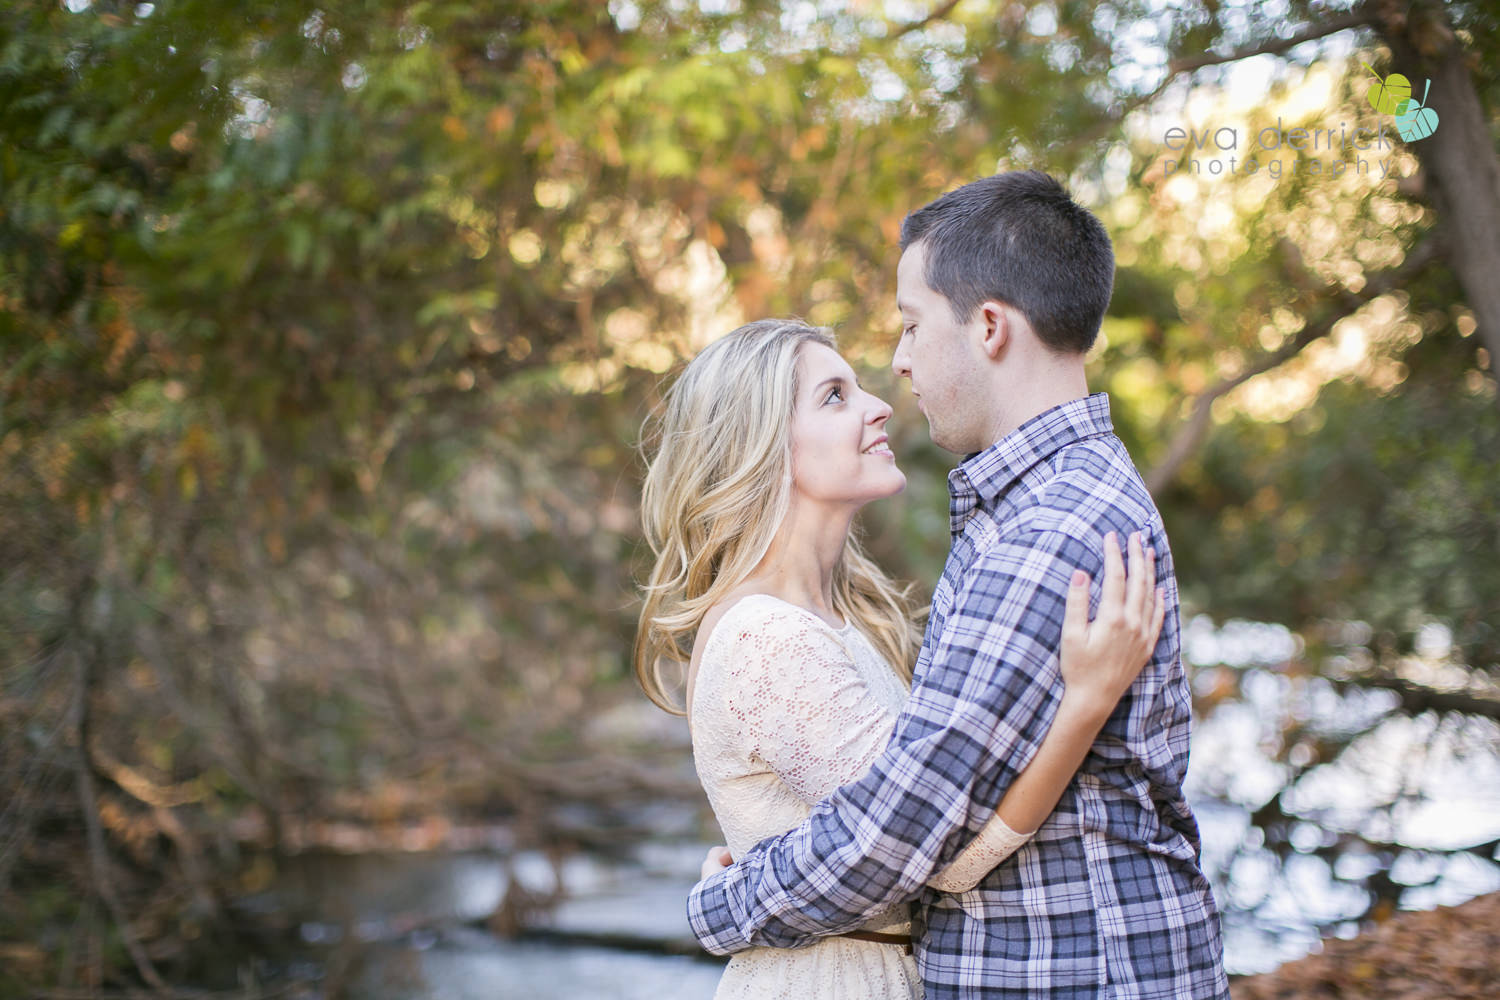 Albion-Hills-Photographer-Engagement-Session-Alanna-Matt-photography-by-Eva-Derrick-Photography-004.JPG